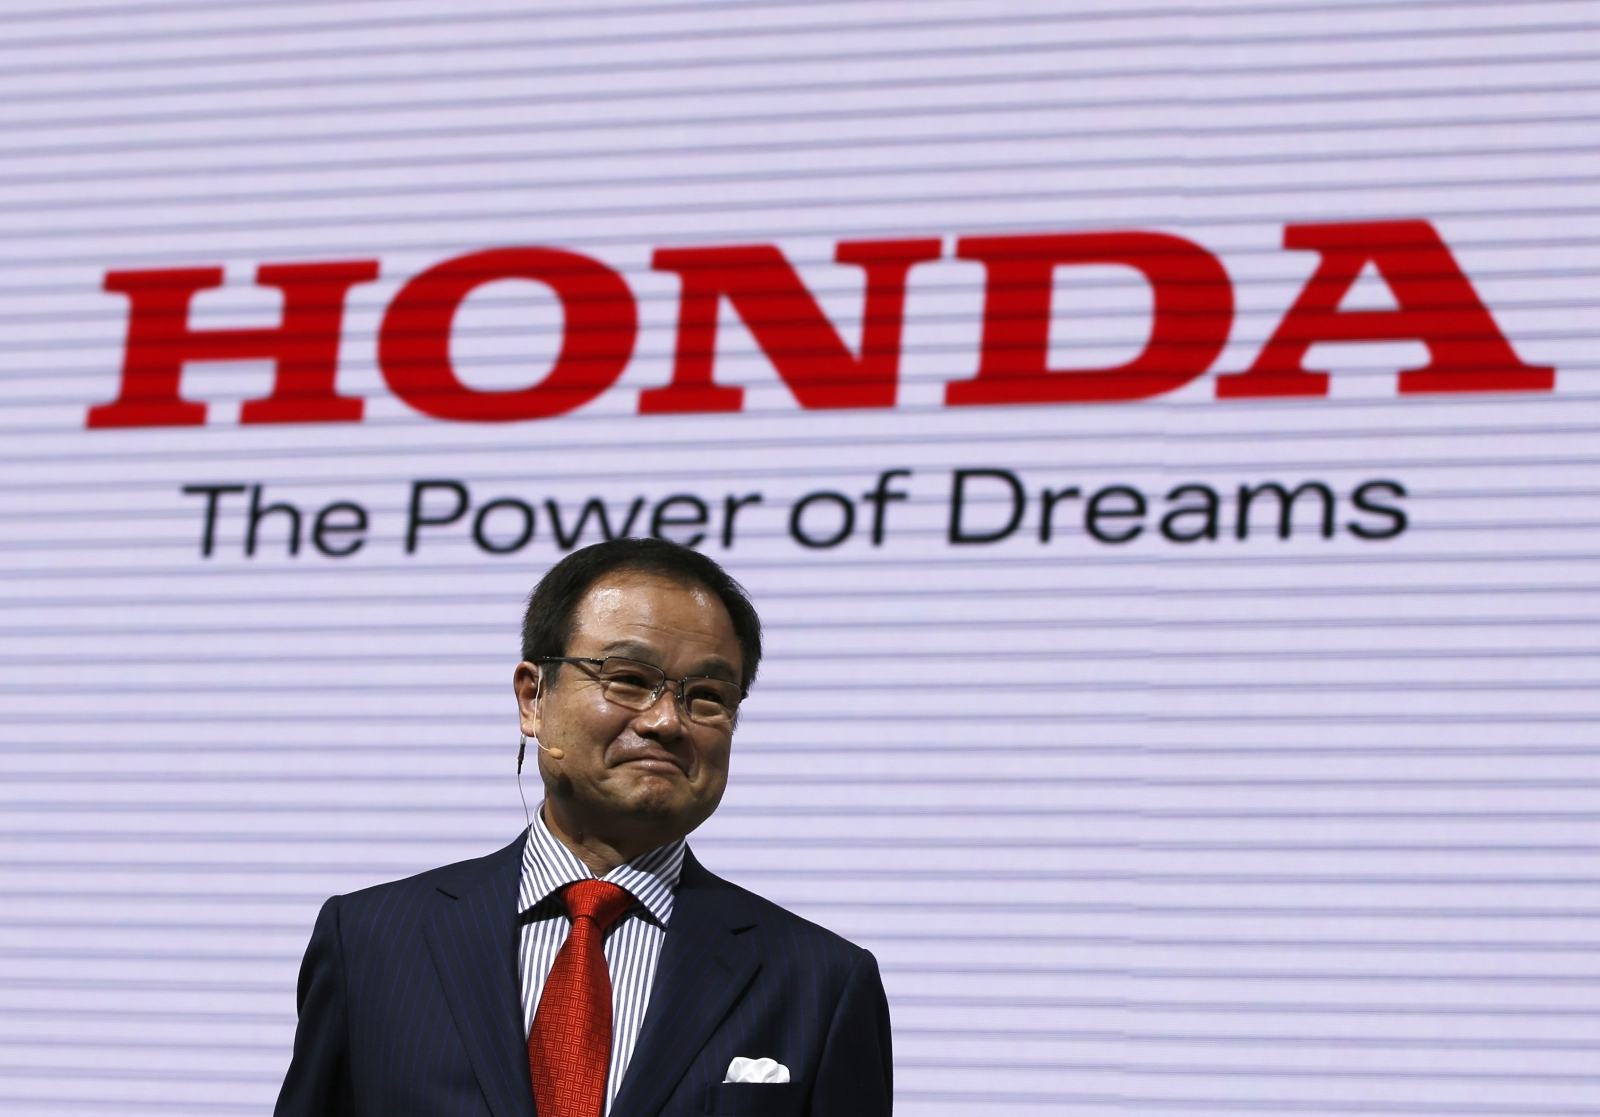 Honda Motor Co's President and Chief Executive Officer Takanobu Ito resigns.